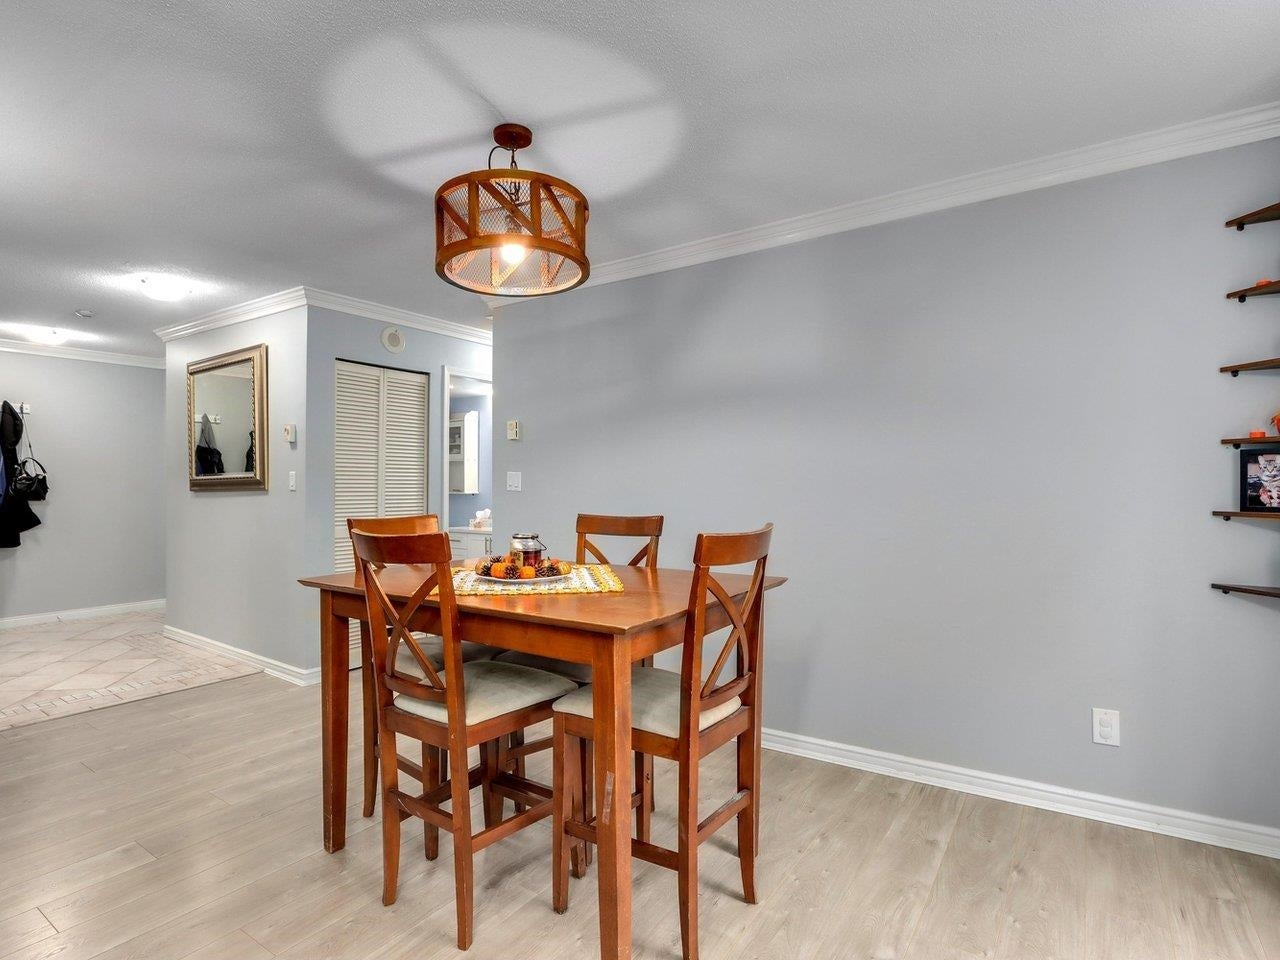 302 412 TWELFTH STREET - Uptown NW Apartment/Condo for sale, 2 Bedrooms (R2625659) - #3